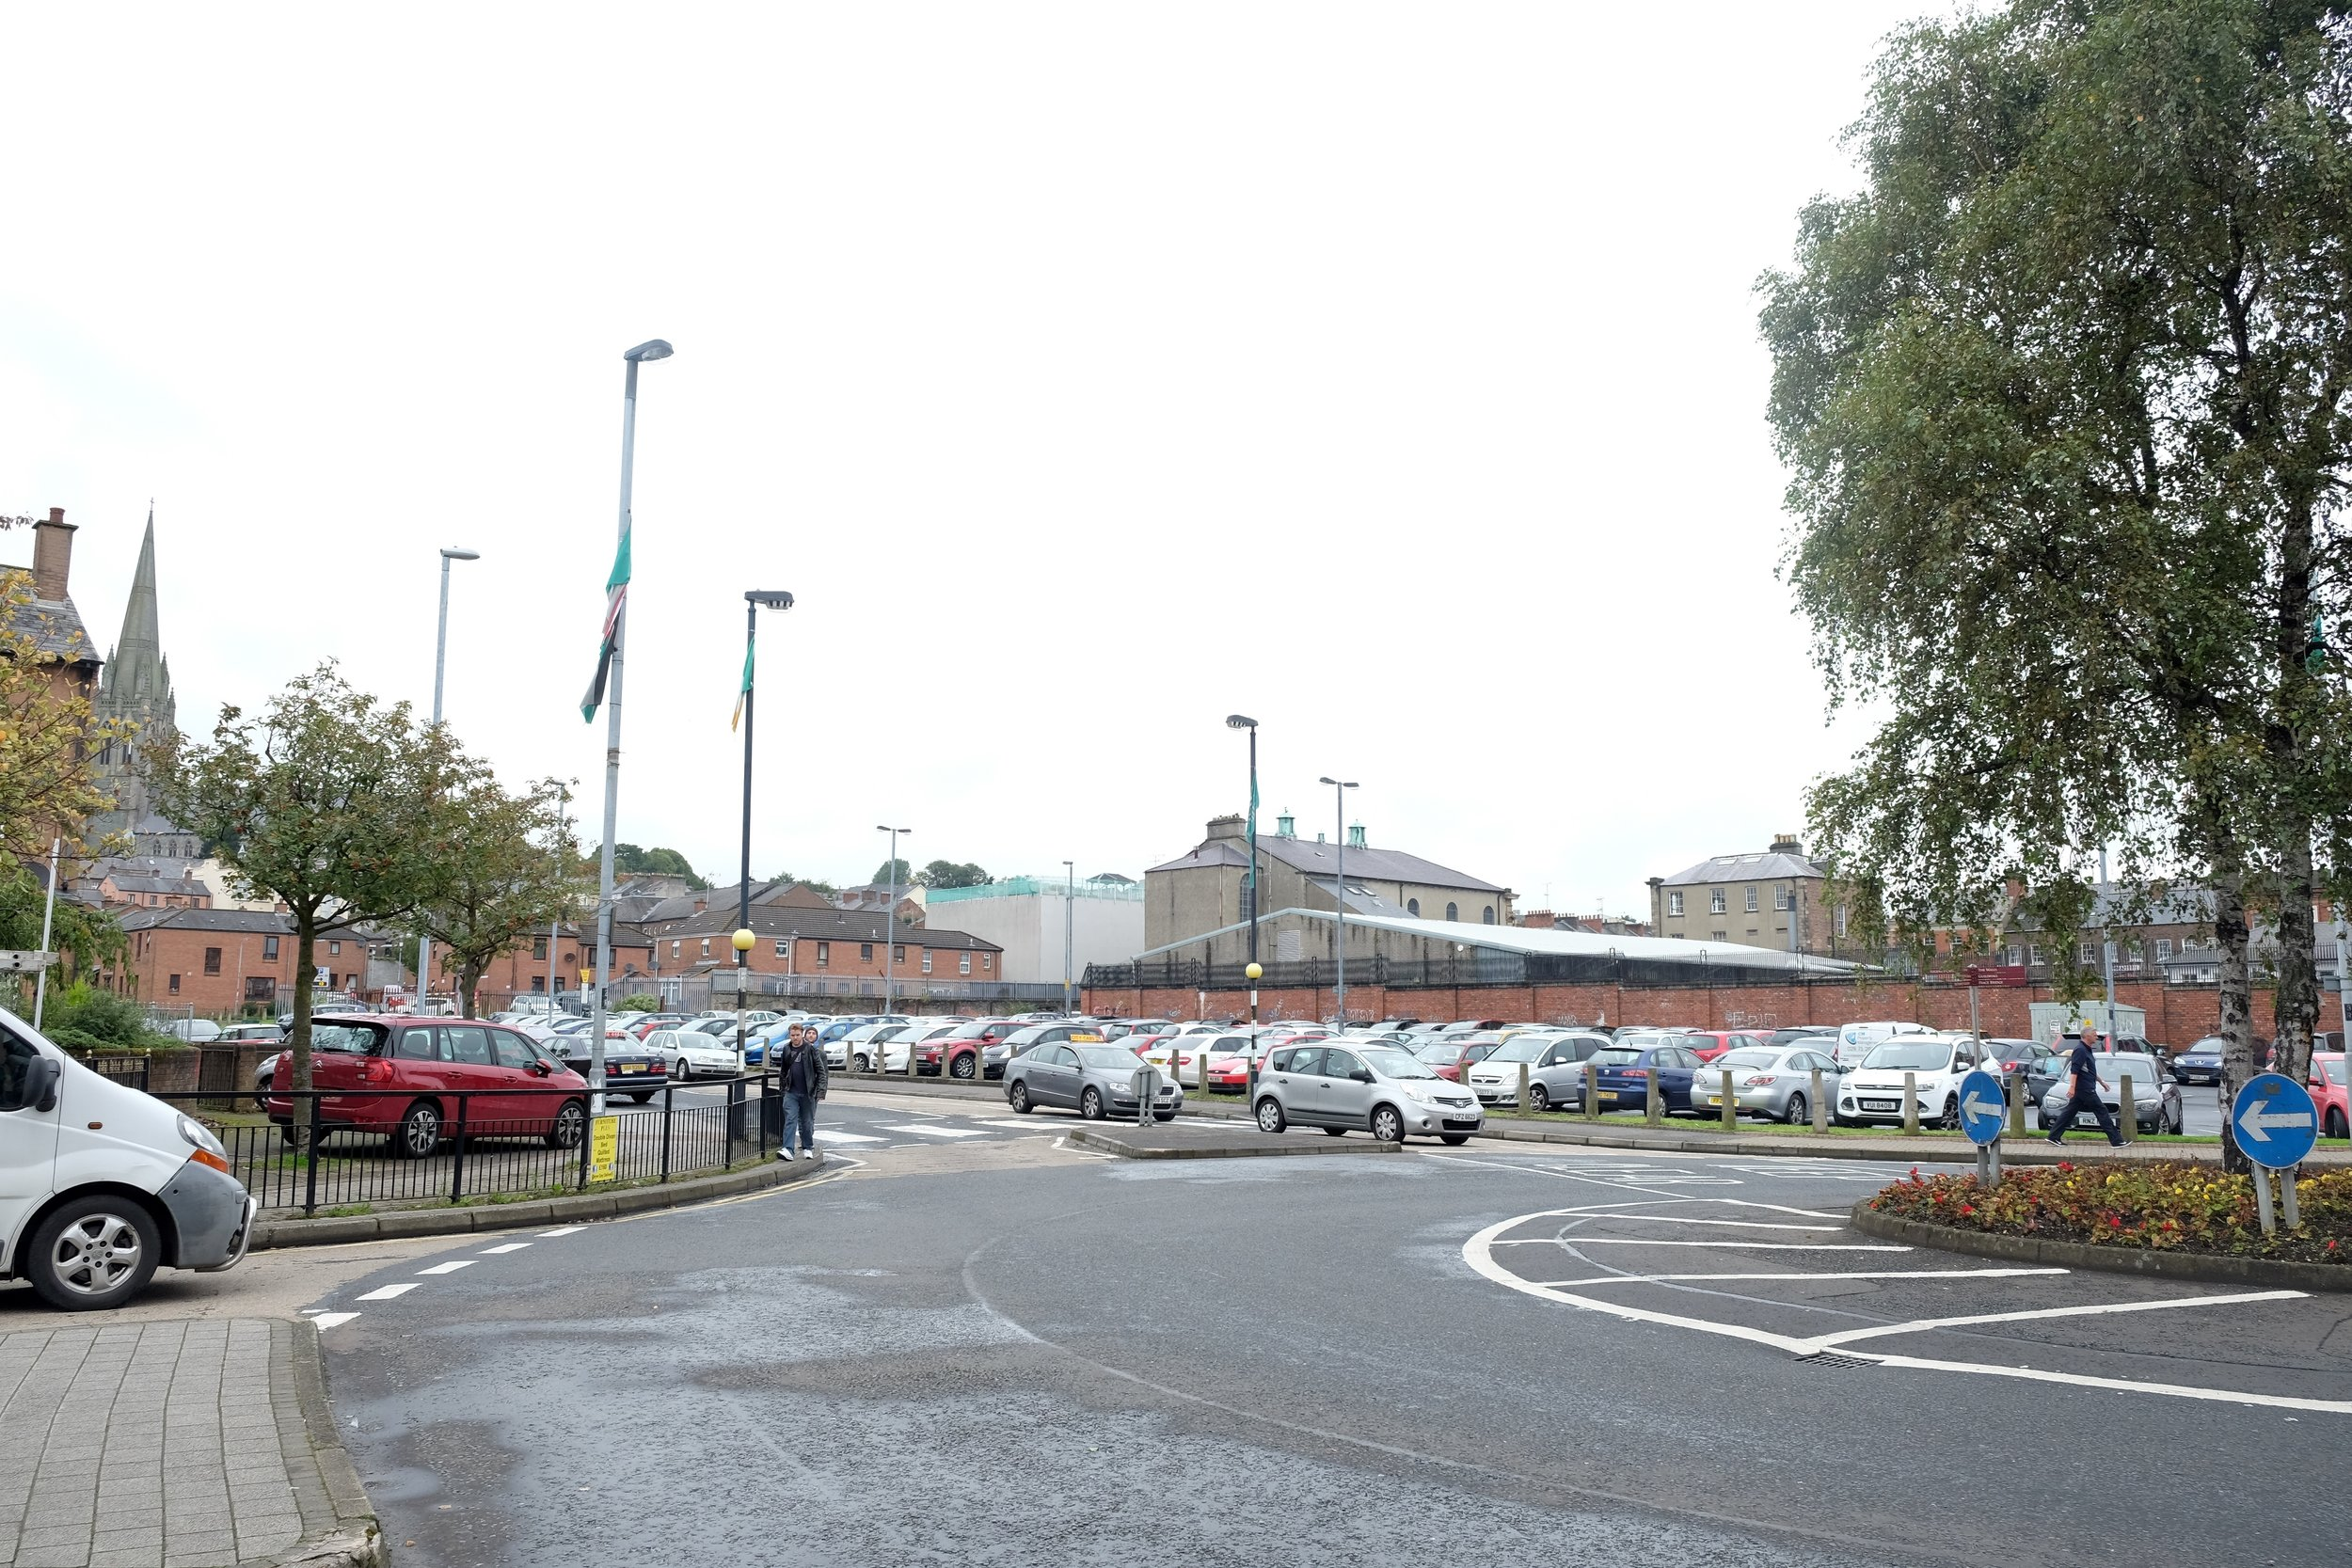 The roundabout at William Street, generally considered the start of the Bogside.